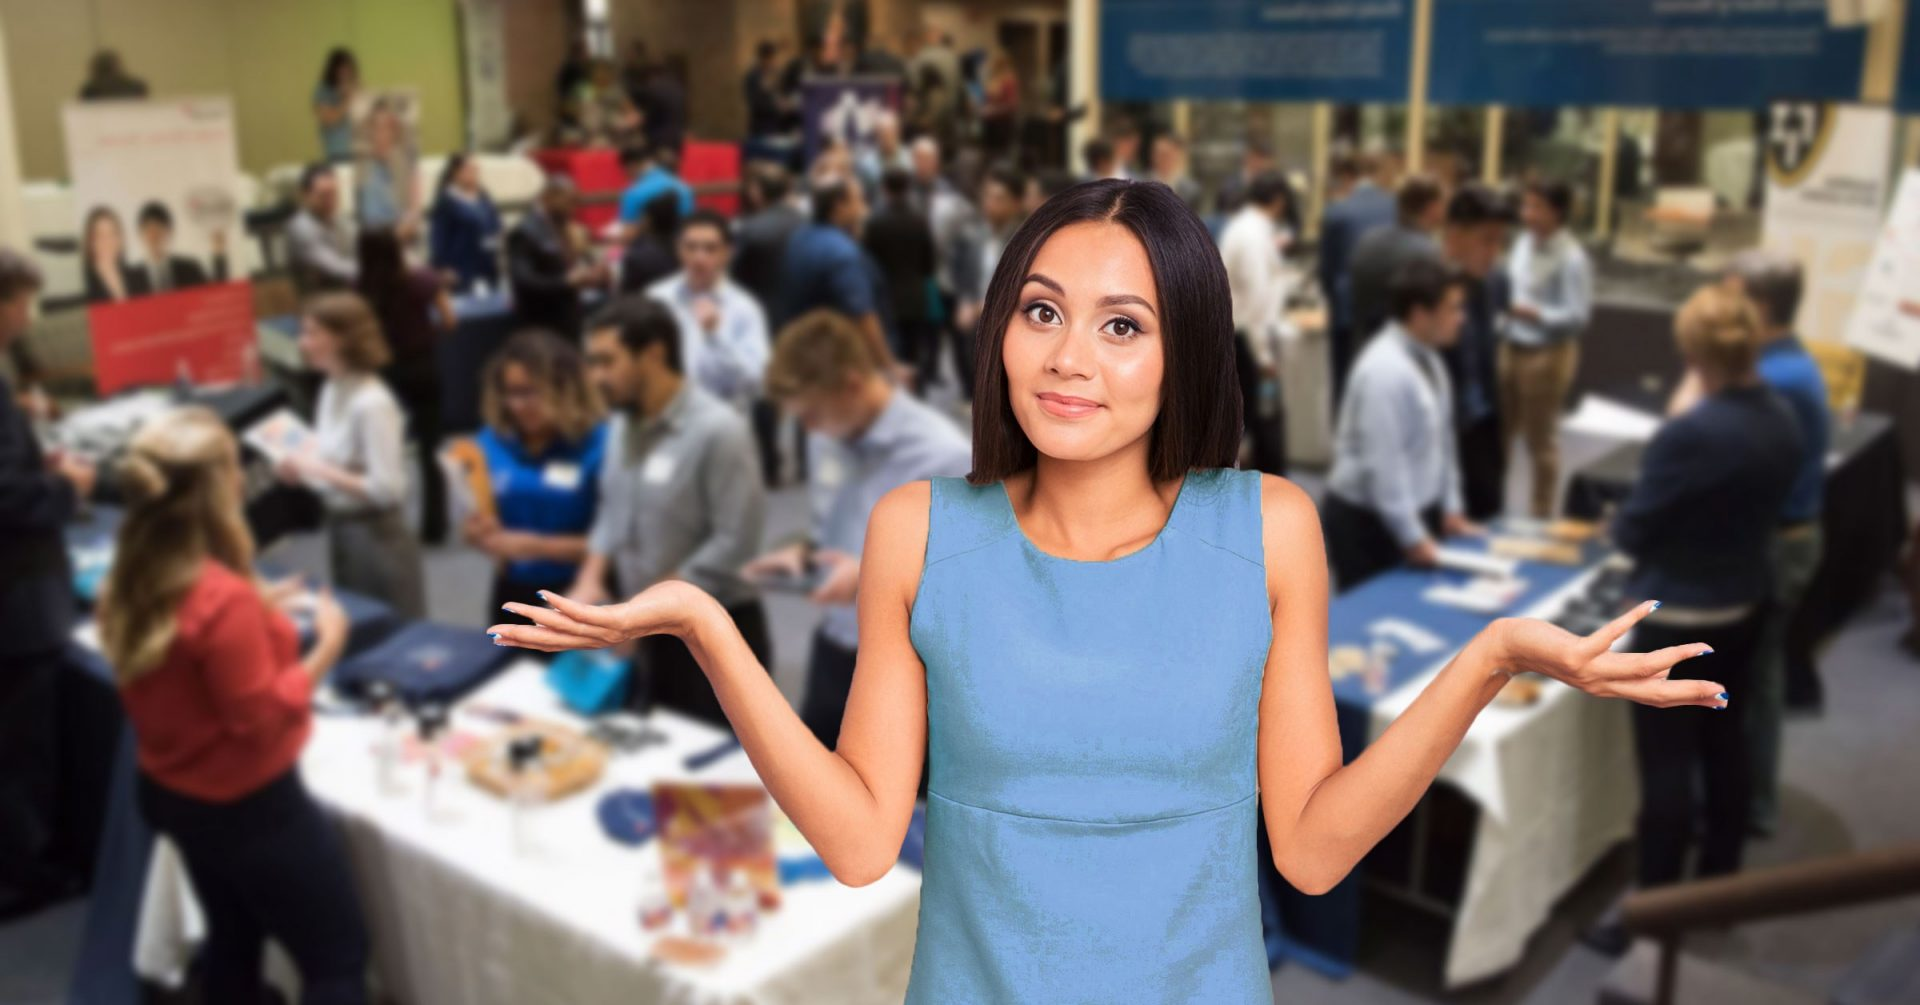 What Is An Employee Benefit Fair?